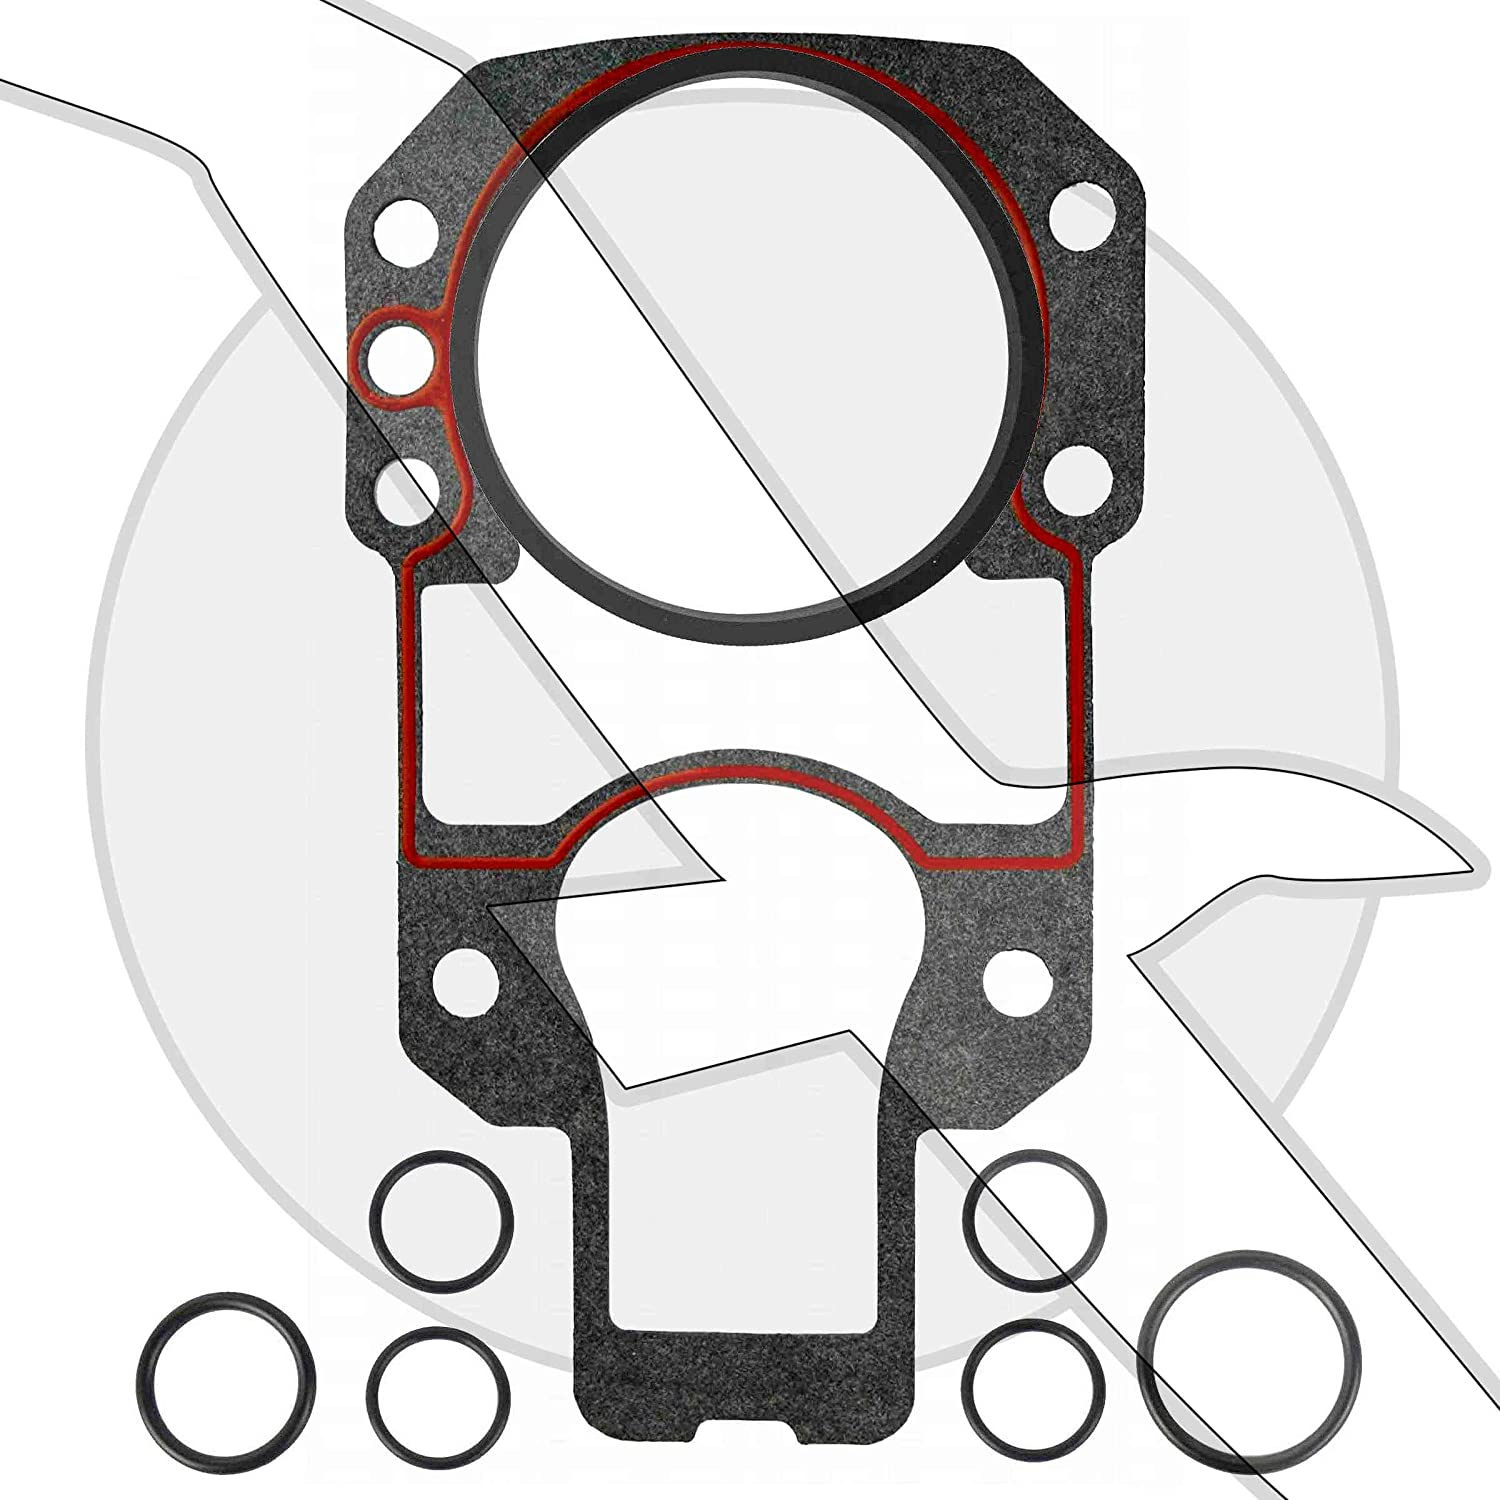 Sterndrive Outdrive Mounting Gasket Set Kit for Mercruiser Alpha One Drive replaces 27-94996Q2